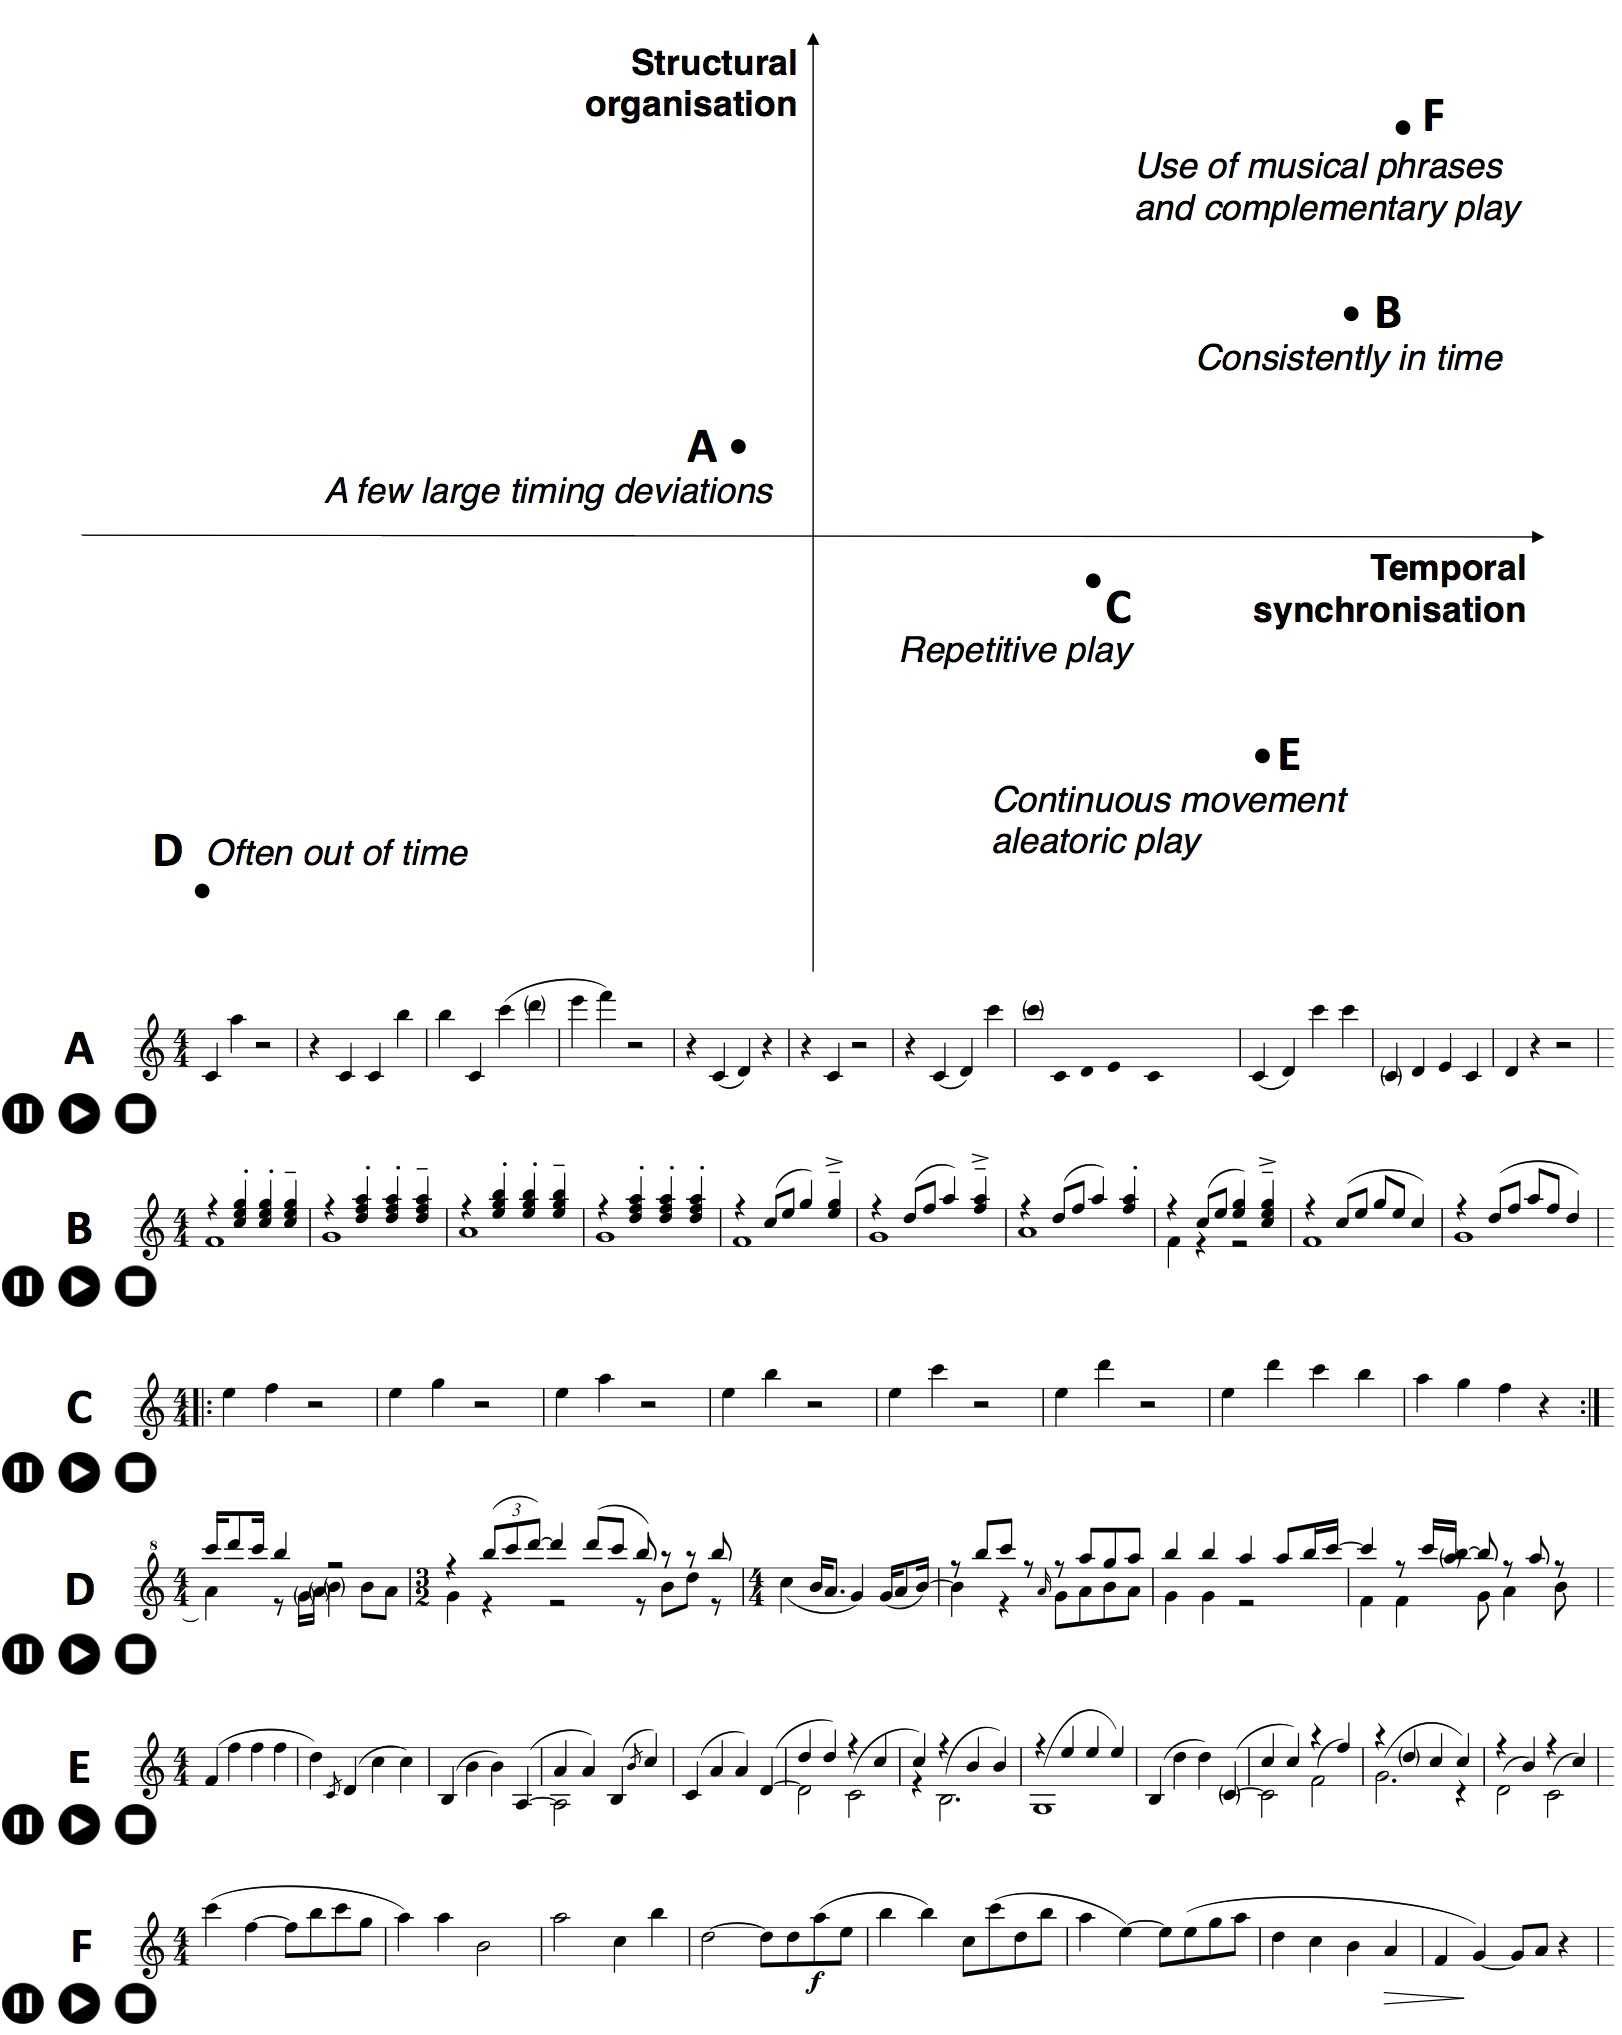 Frontiers impaired maintenance of interpersonal synchronization a plot to describe musical characteristics of excerpts from recorded musical improvisations with structural organization of musical notes on the vertical biocorpaavc Choice Image